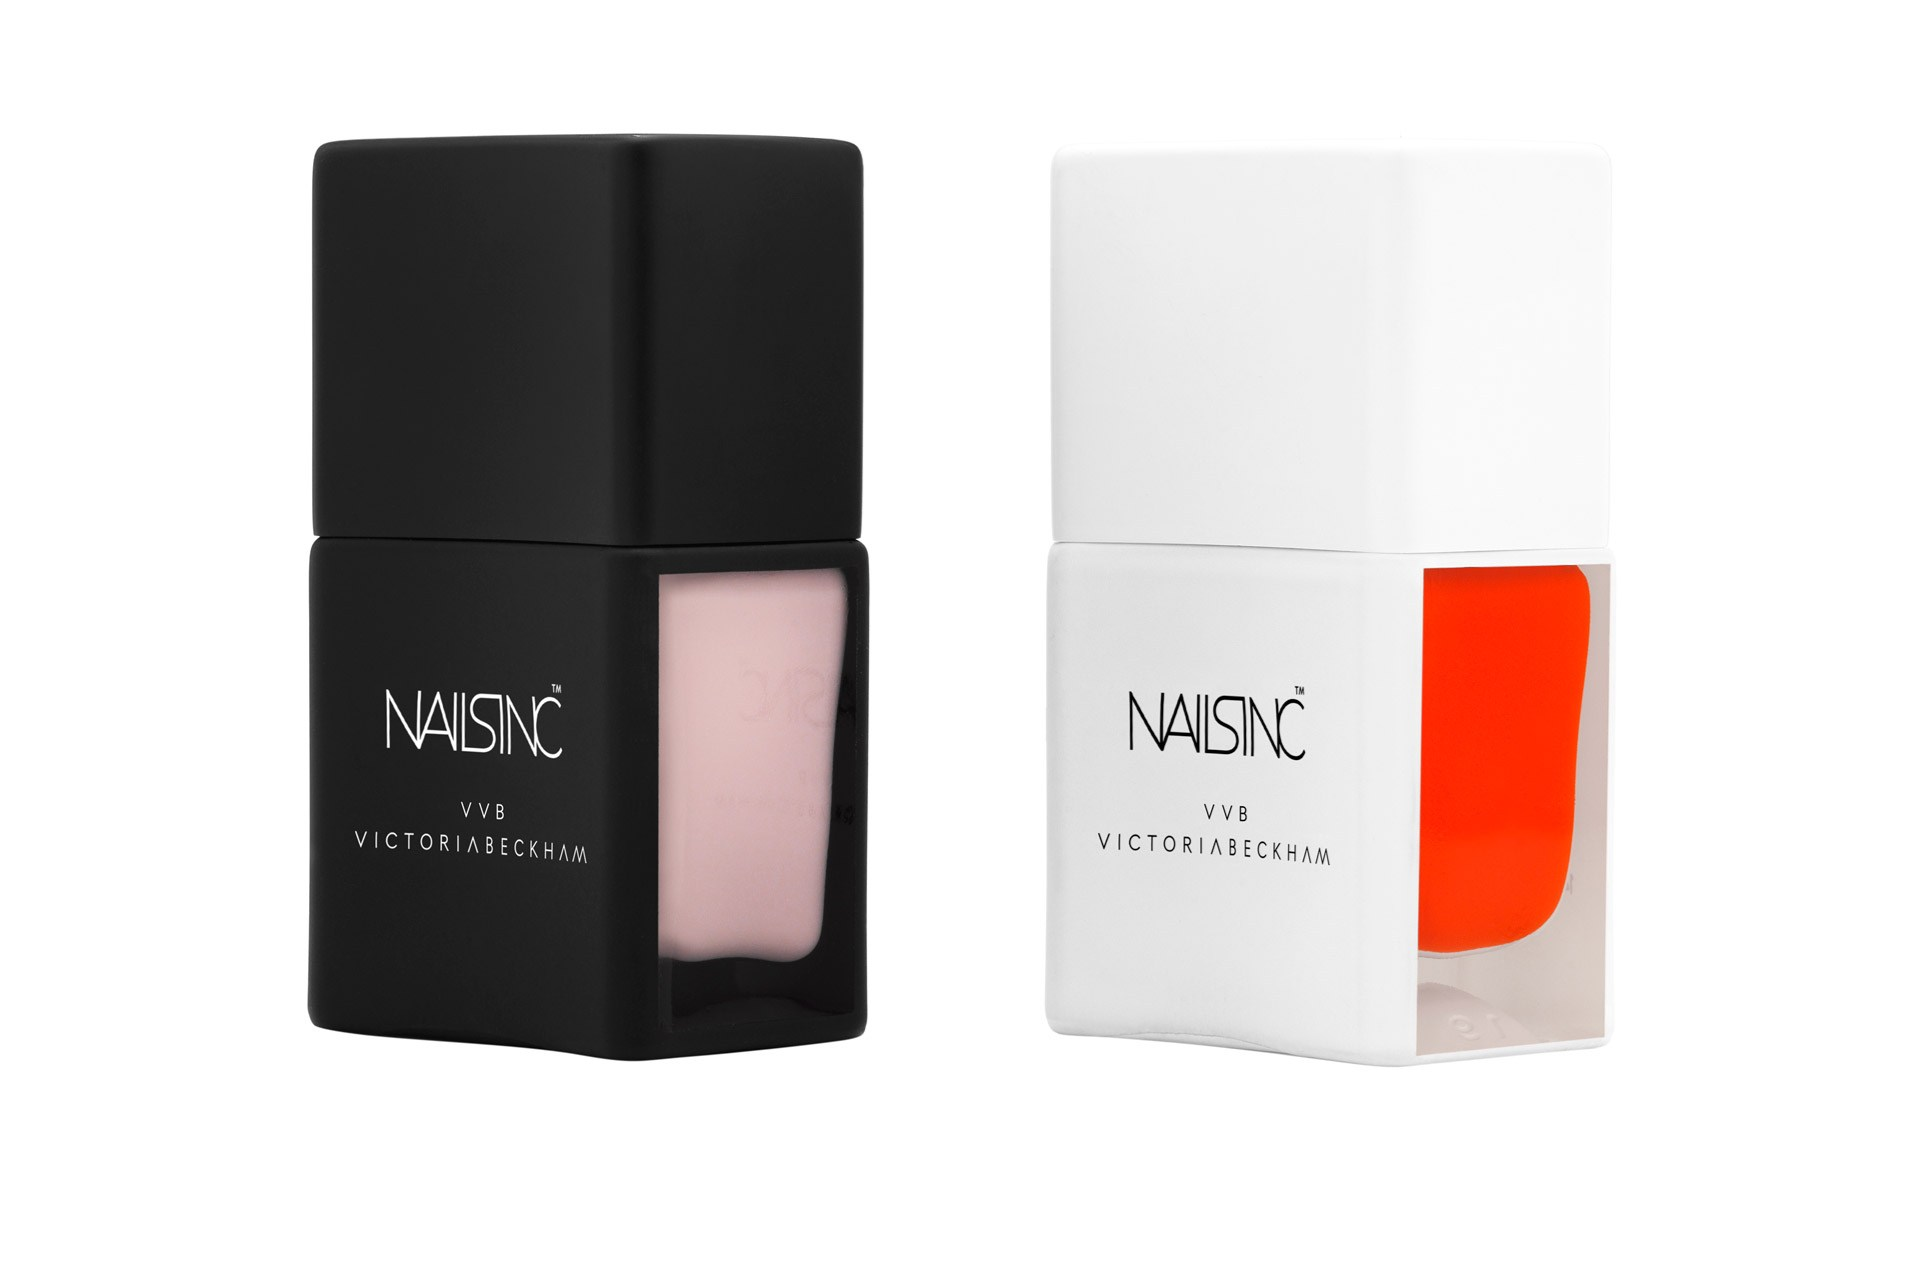 Victoria Beckham x Nails Inc Nail Polish – Sharon A Chia